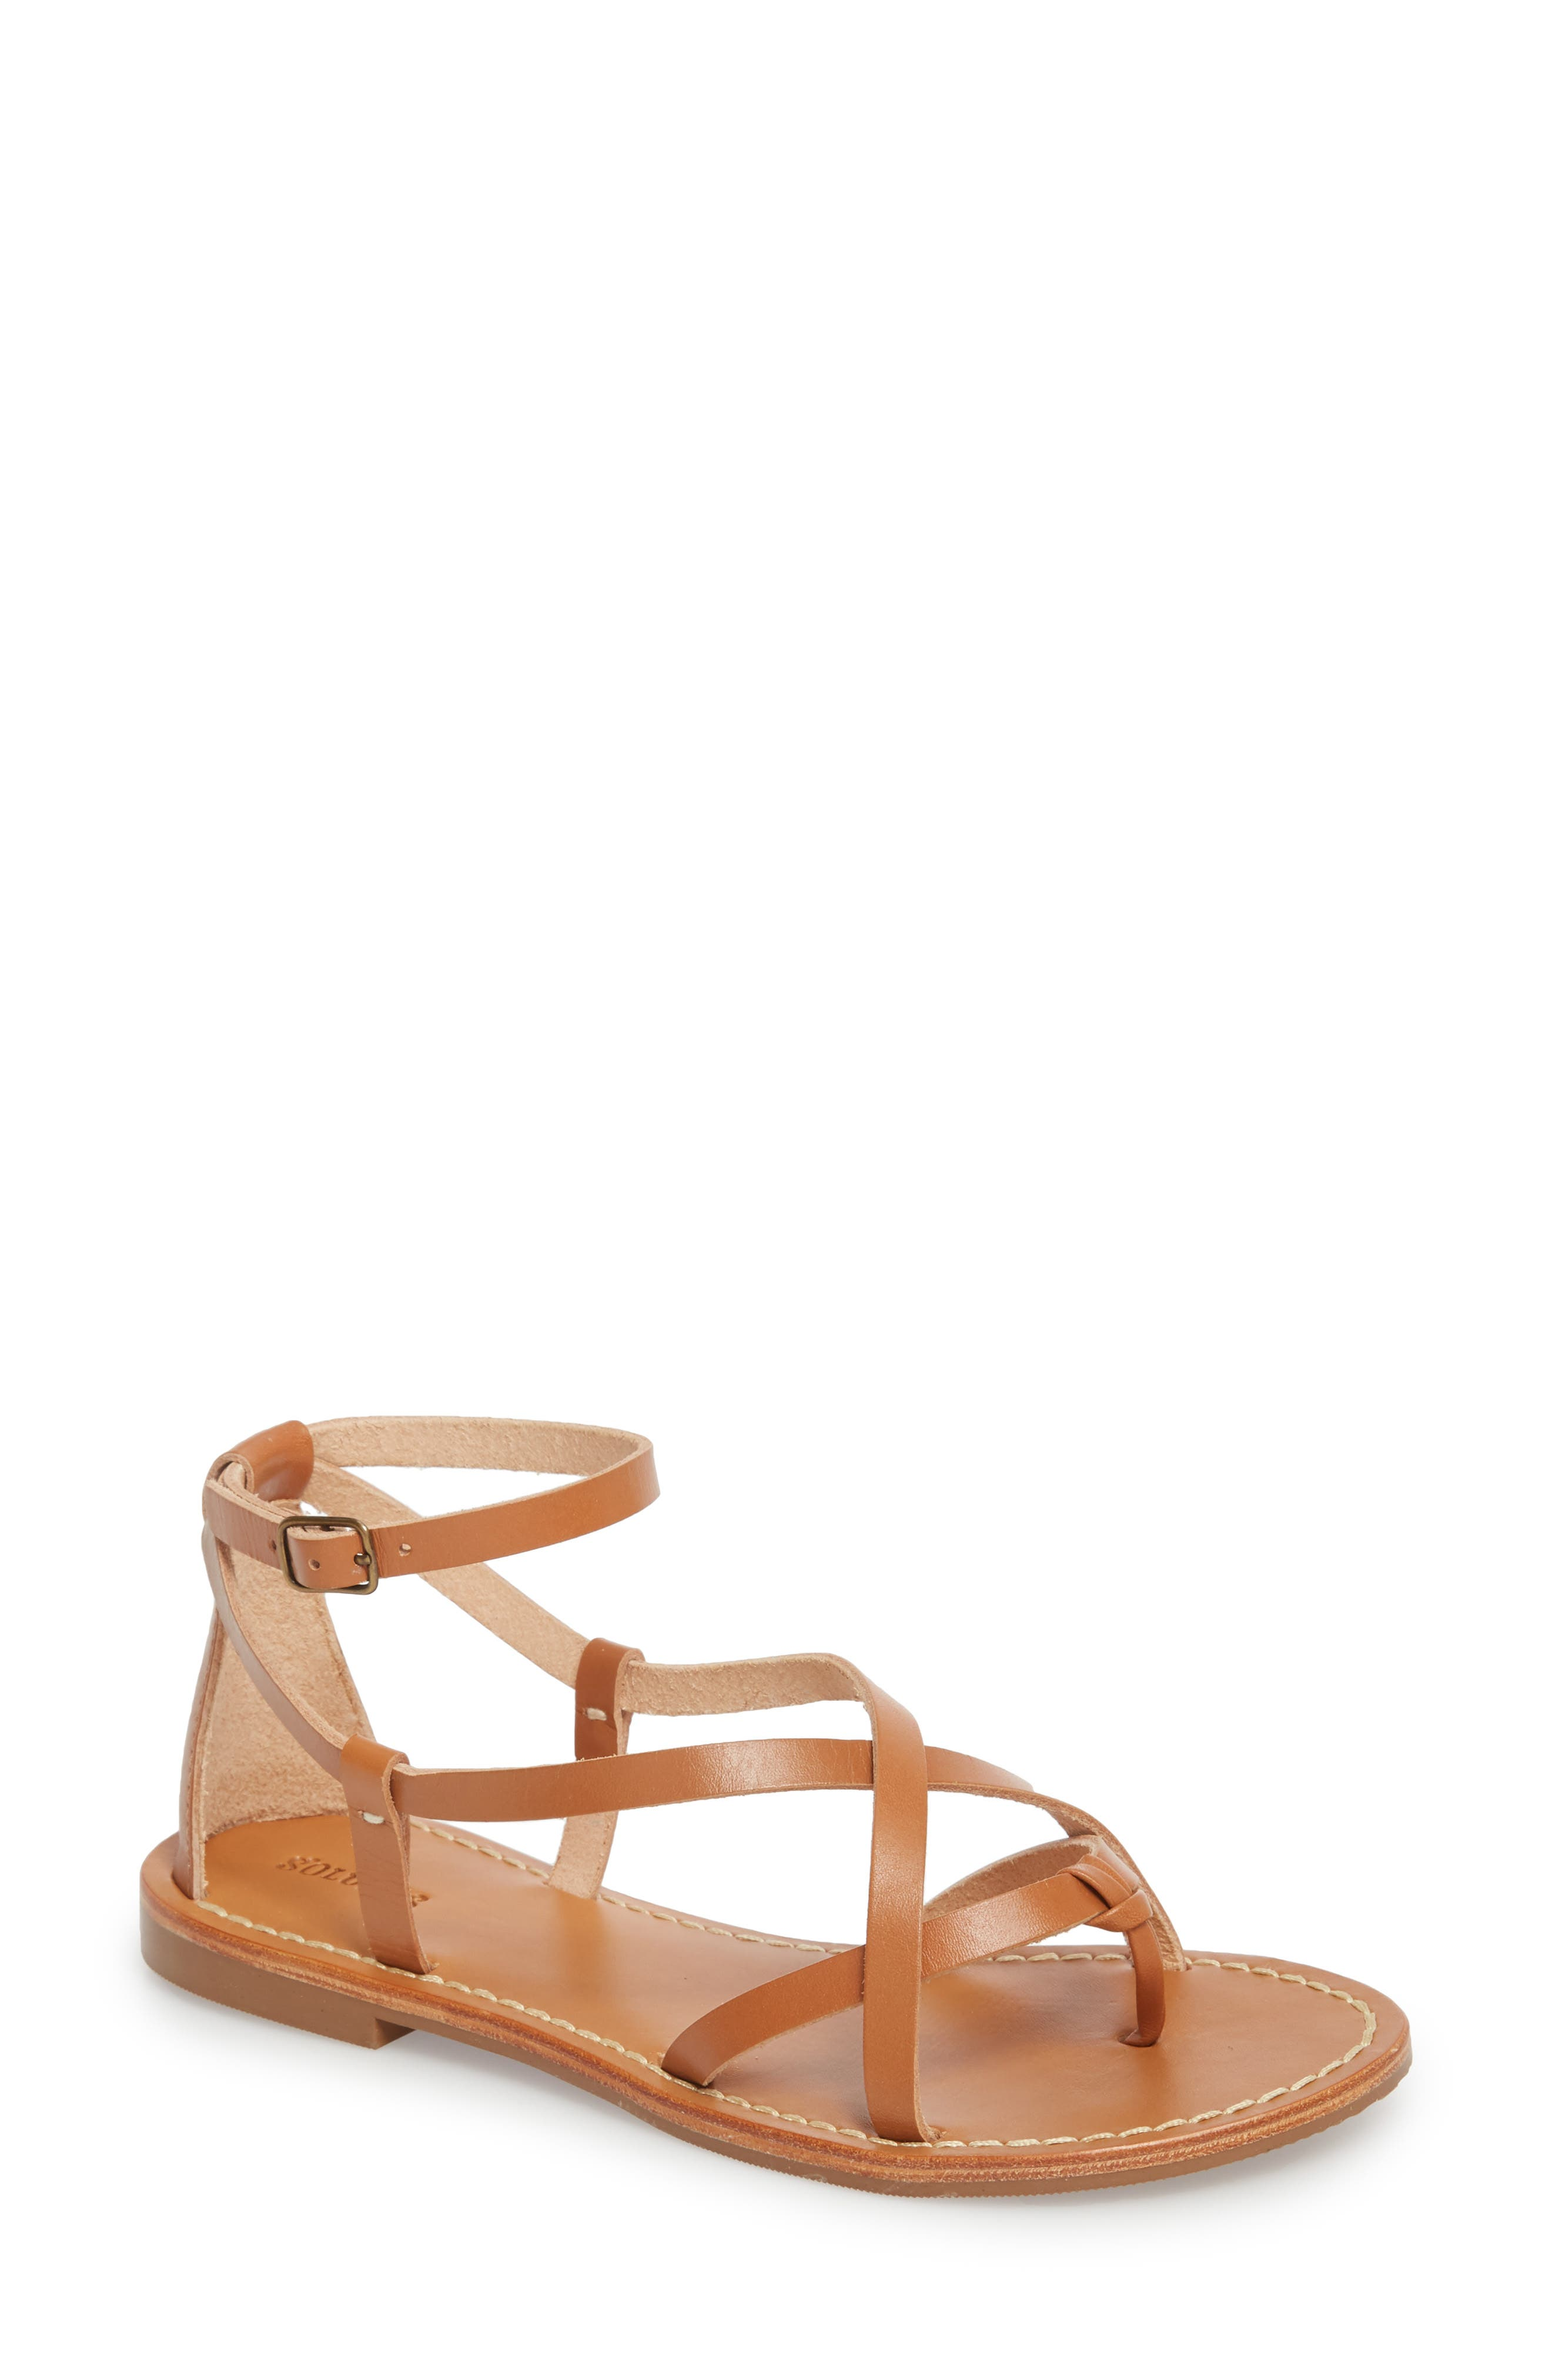 Strappy Sandal,                         Main,                         color, Nude